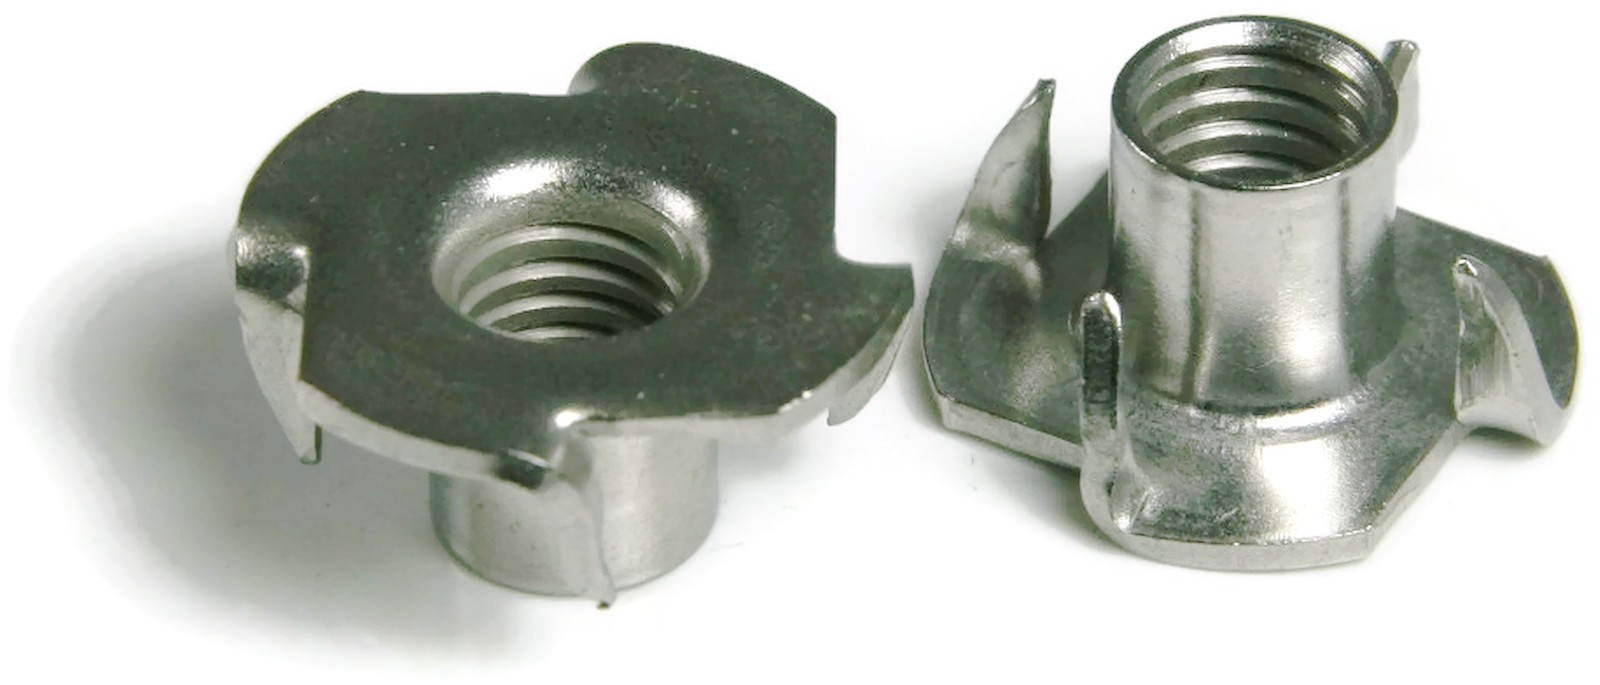 itm Stainless Steel T Nut UNC  Prong x Qty